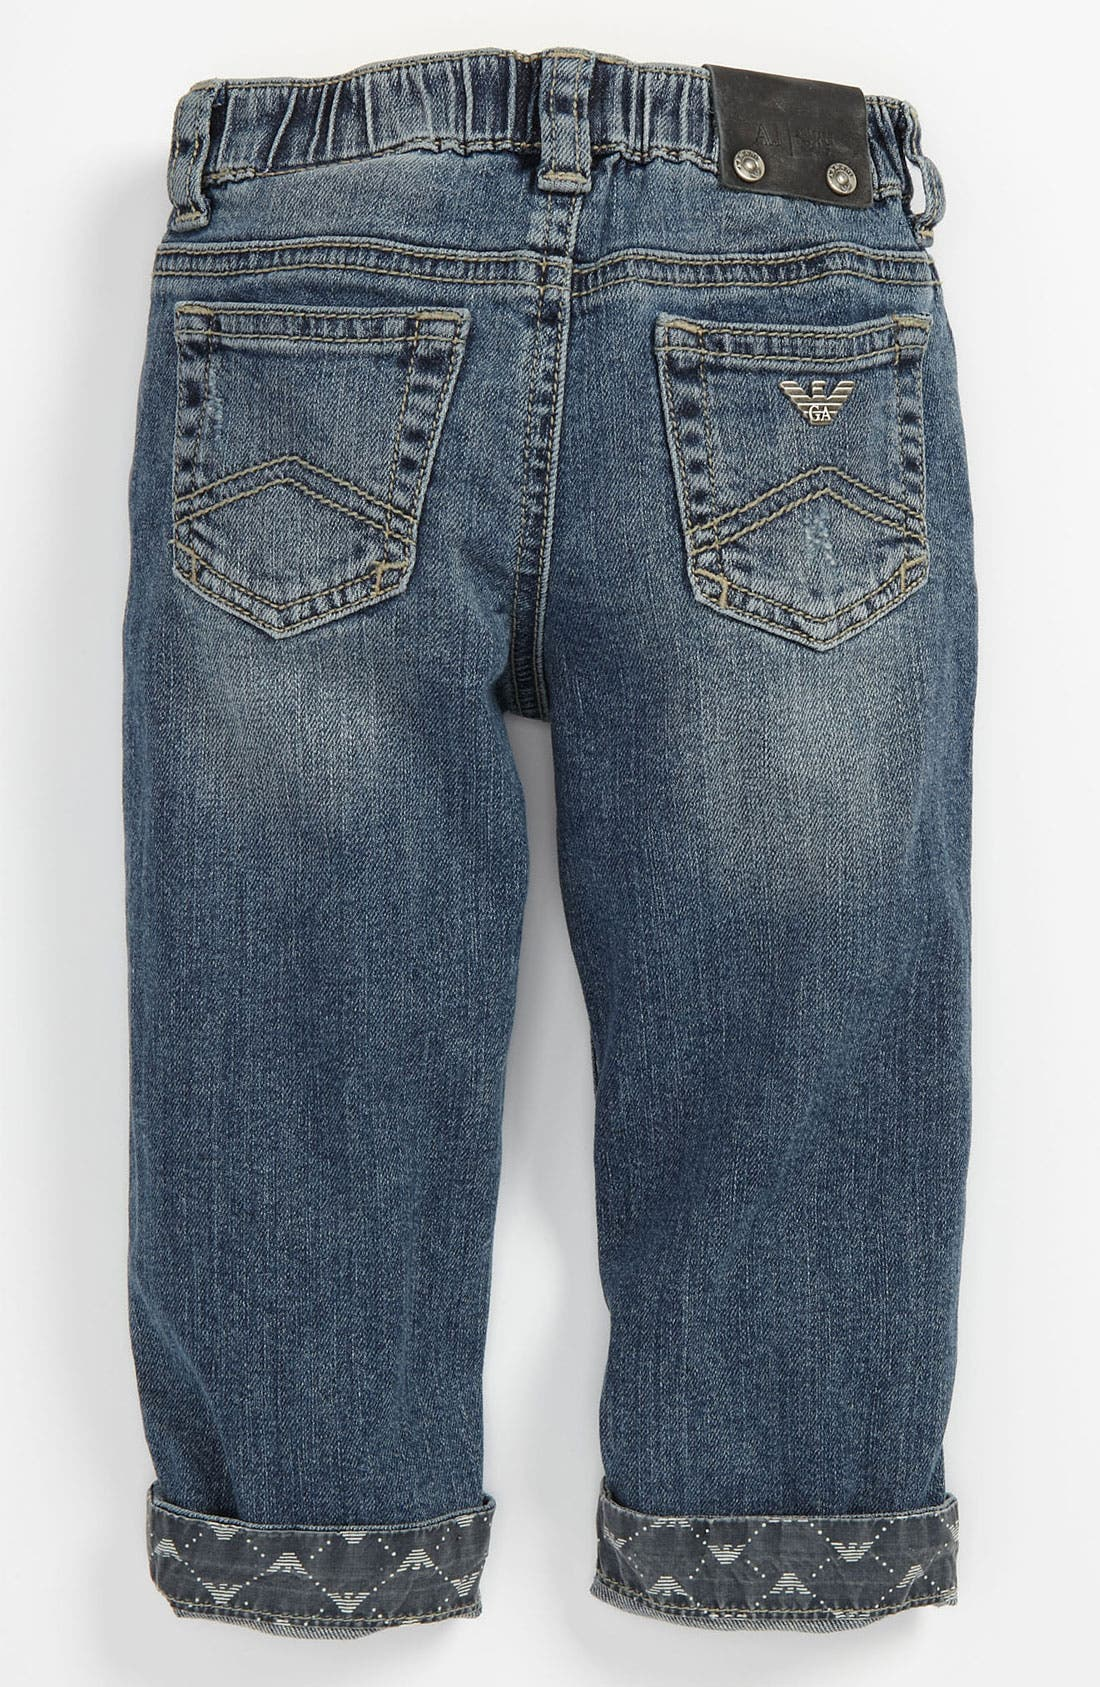 Alternate Image 1 Selected - Armani Junior Jeans (Baby)